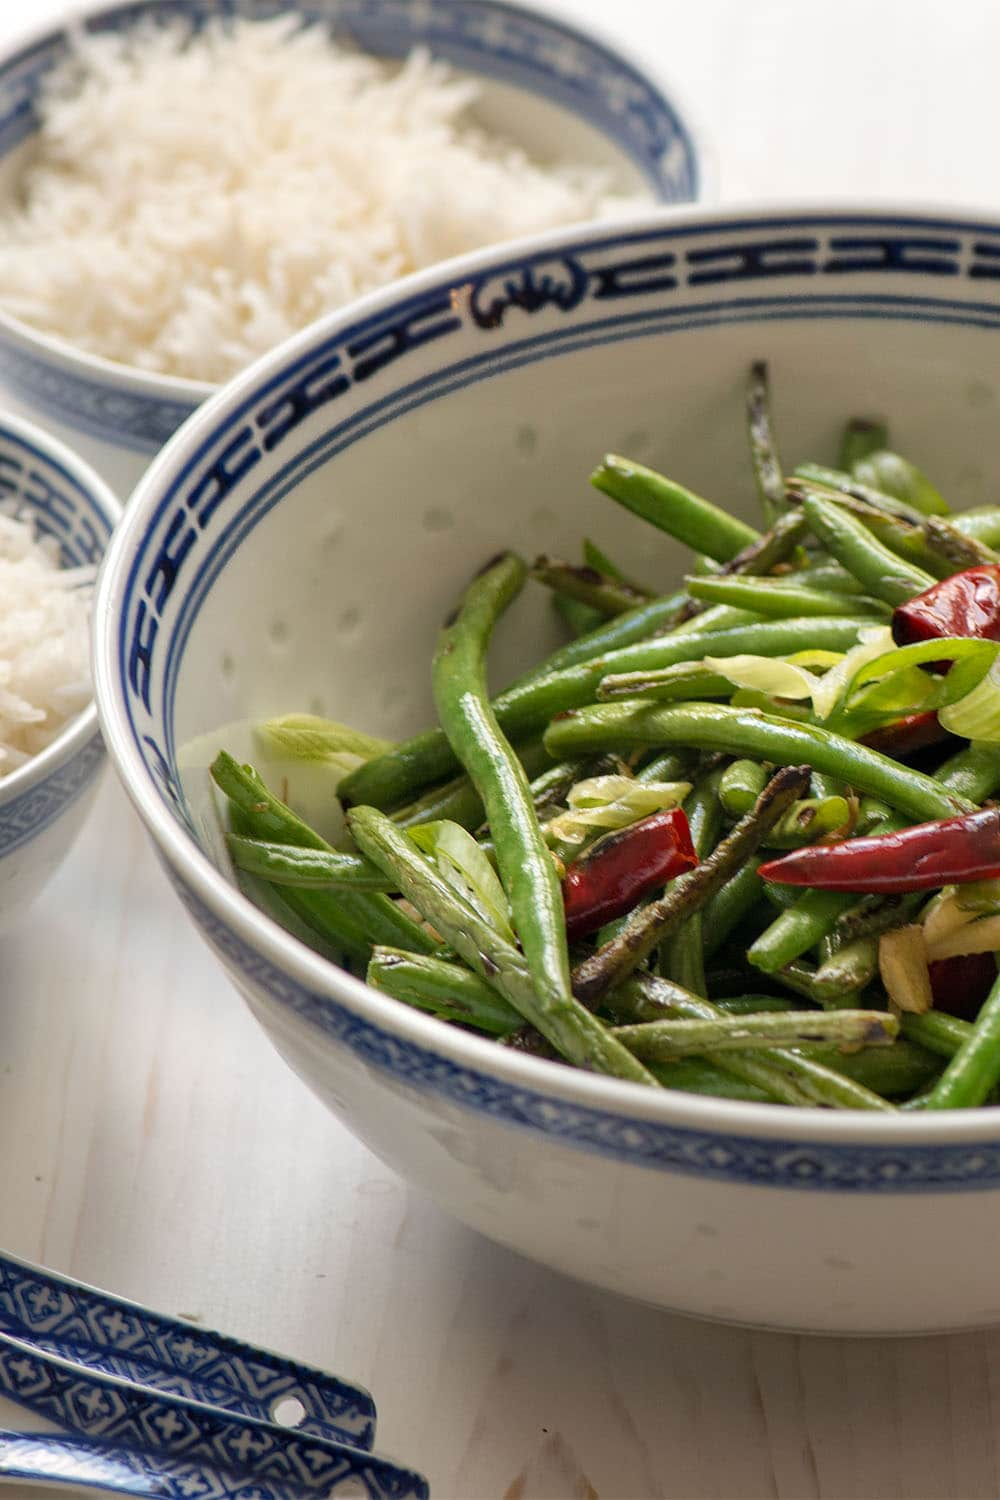 Dry Fried Green Beans With Bullet Chilli